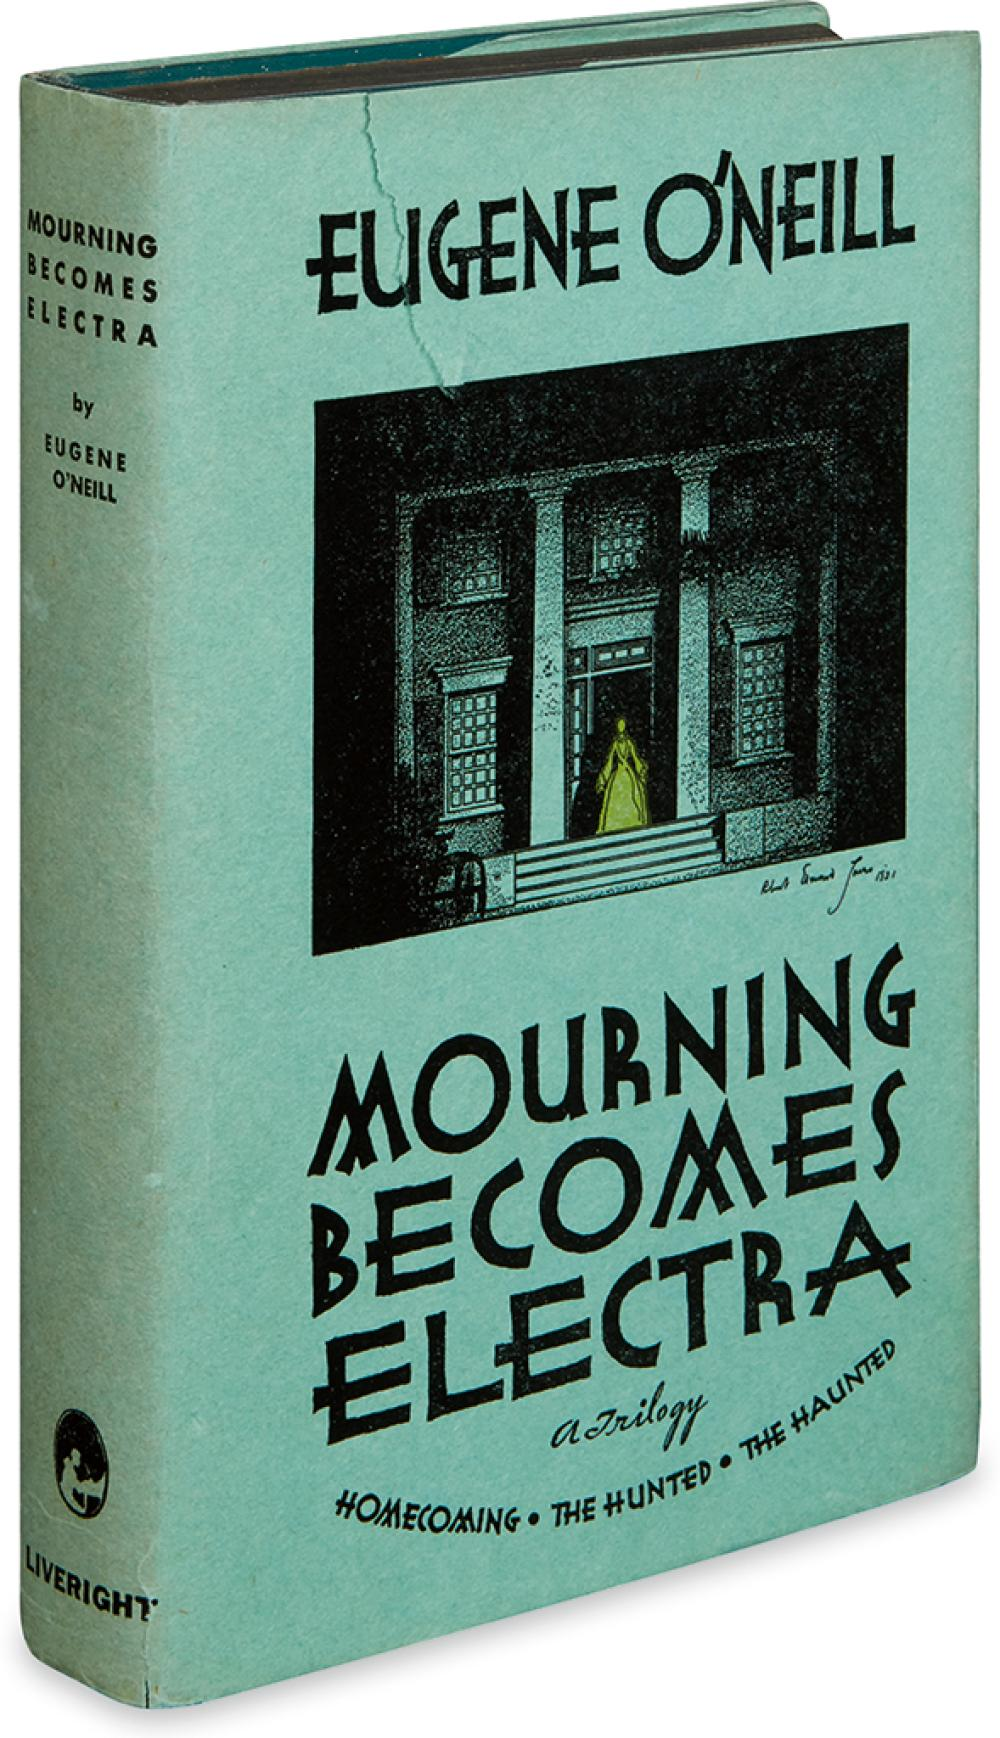 O'NEILL, EUGENE. Mourning Becomes Electra.